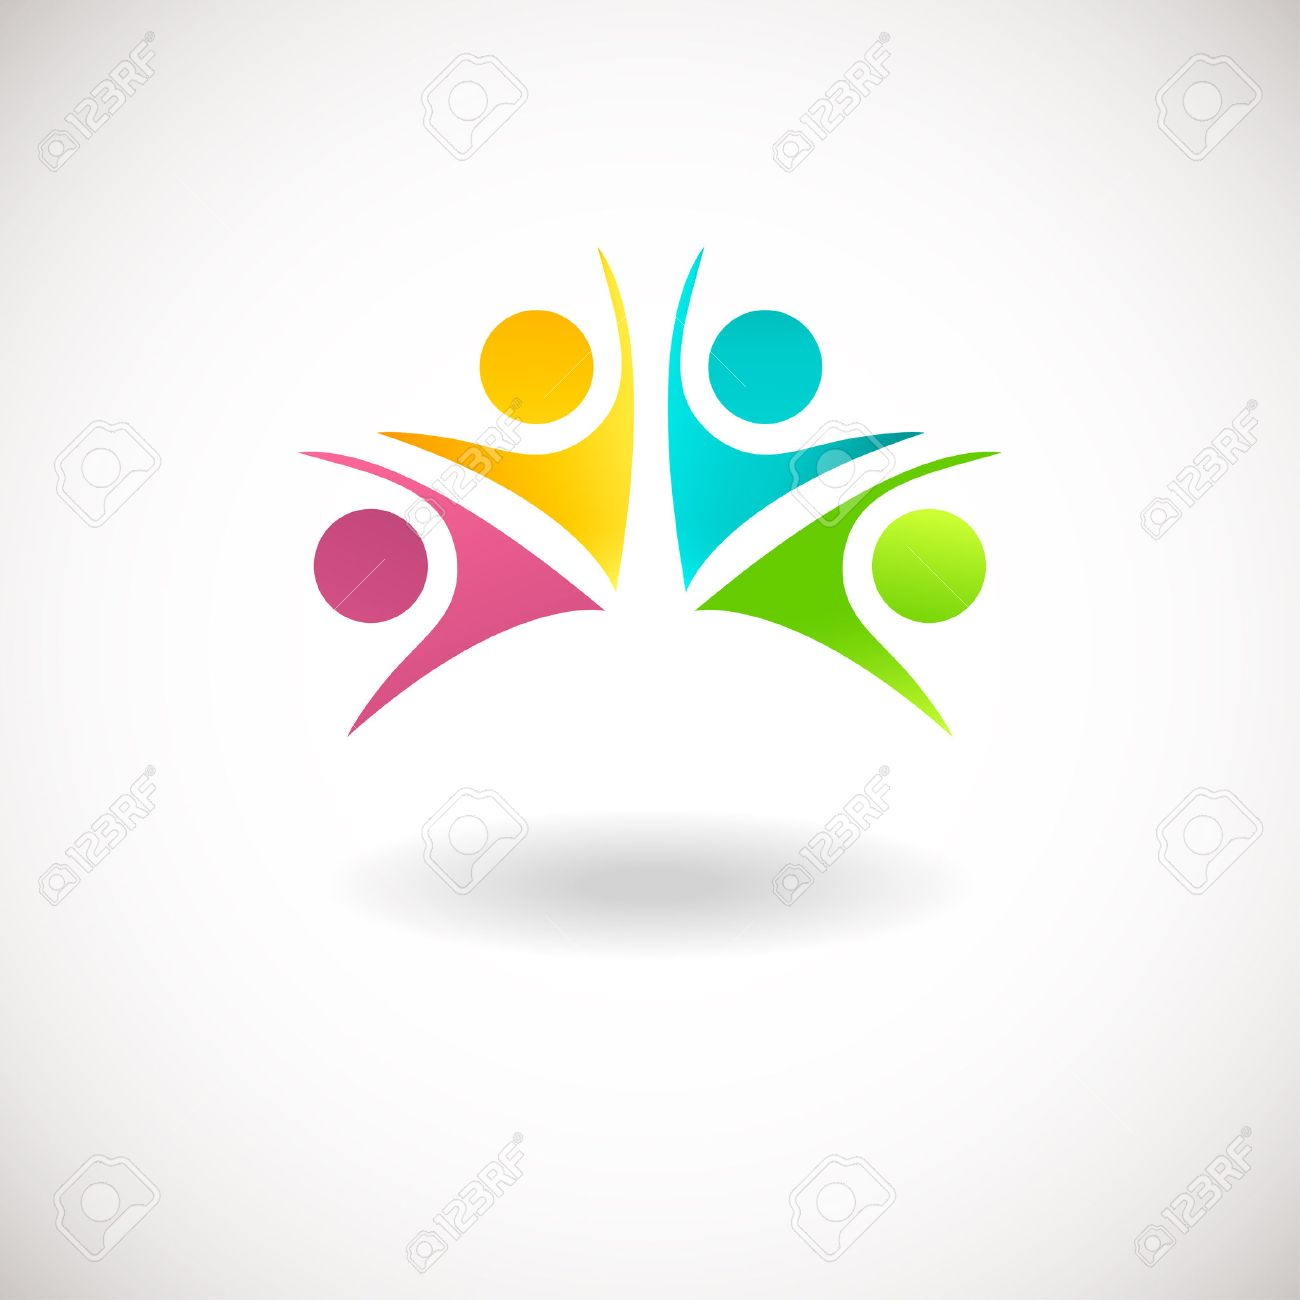 abstract people logo sign icon blue pink green and yellow